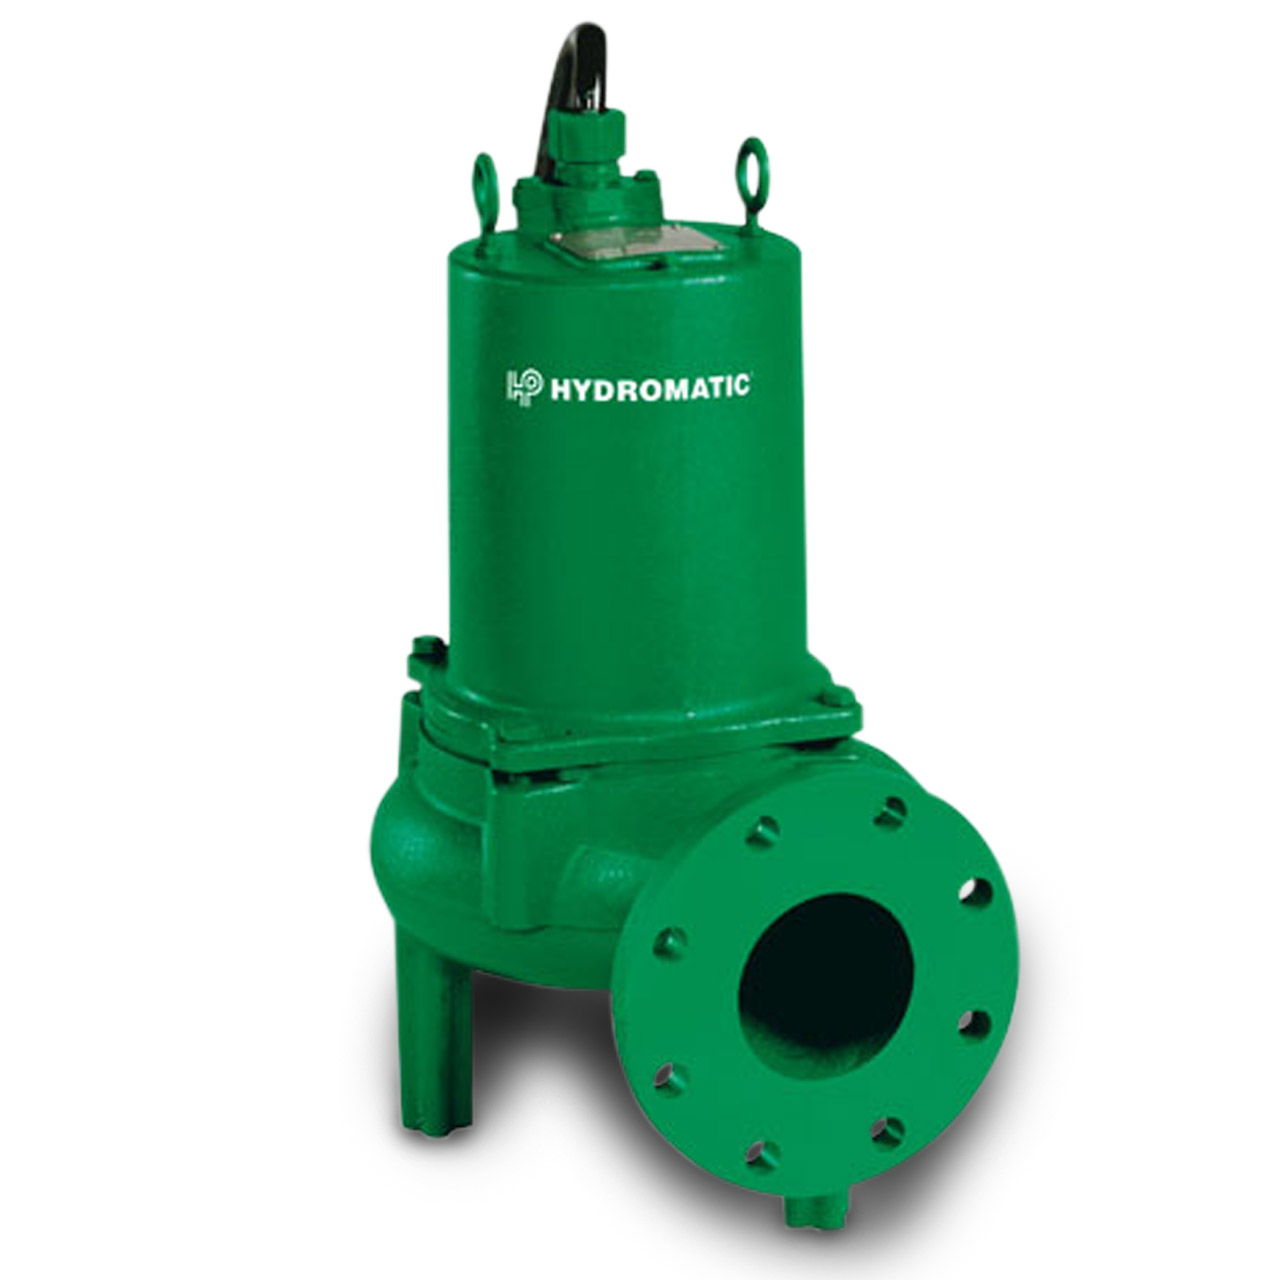 Hydromatic Pump Hydromatic S4s300m2 4 Submersible Sewage